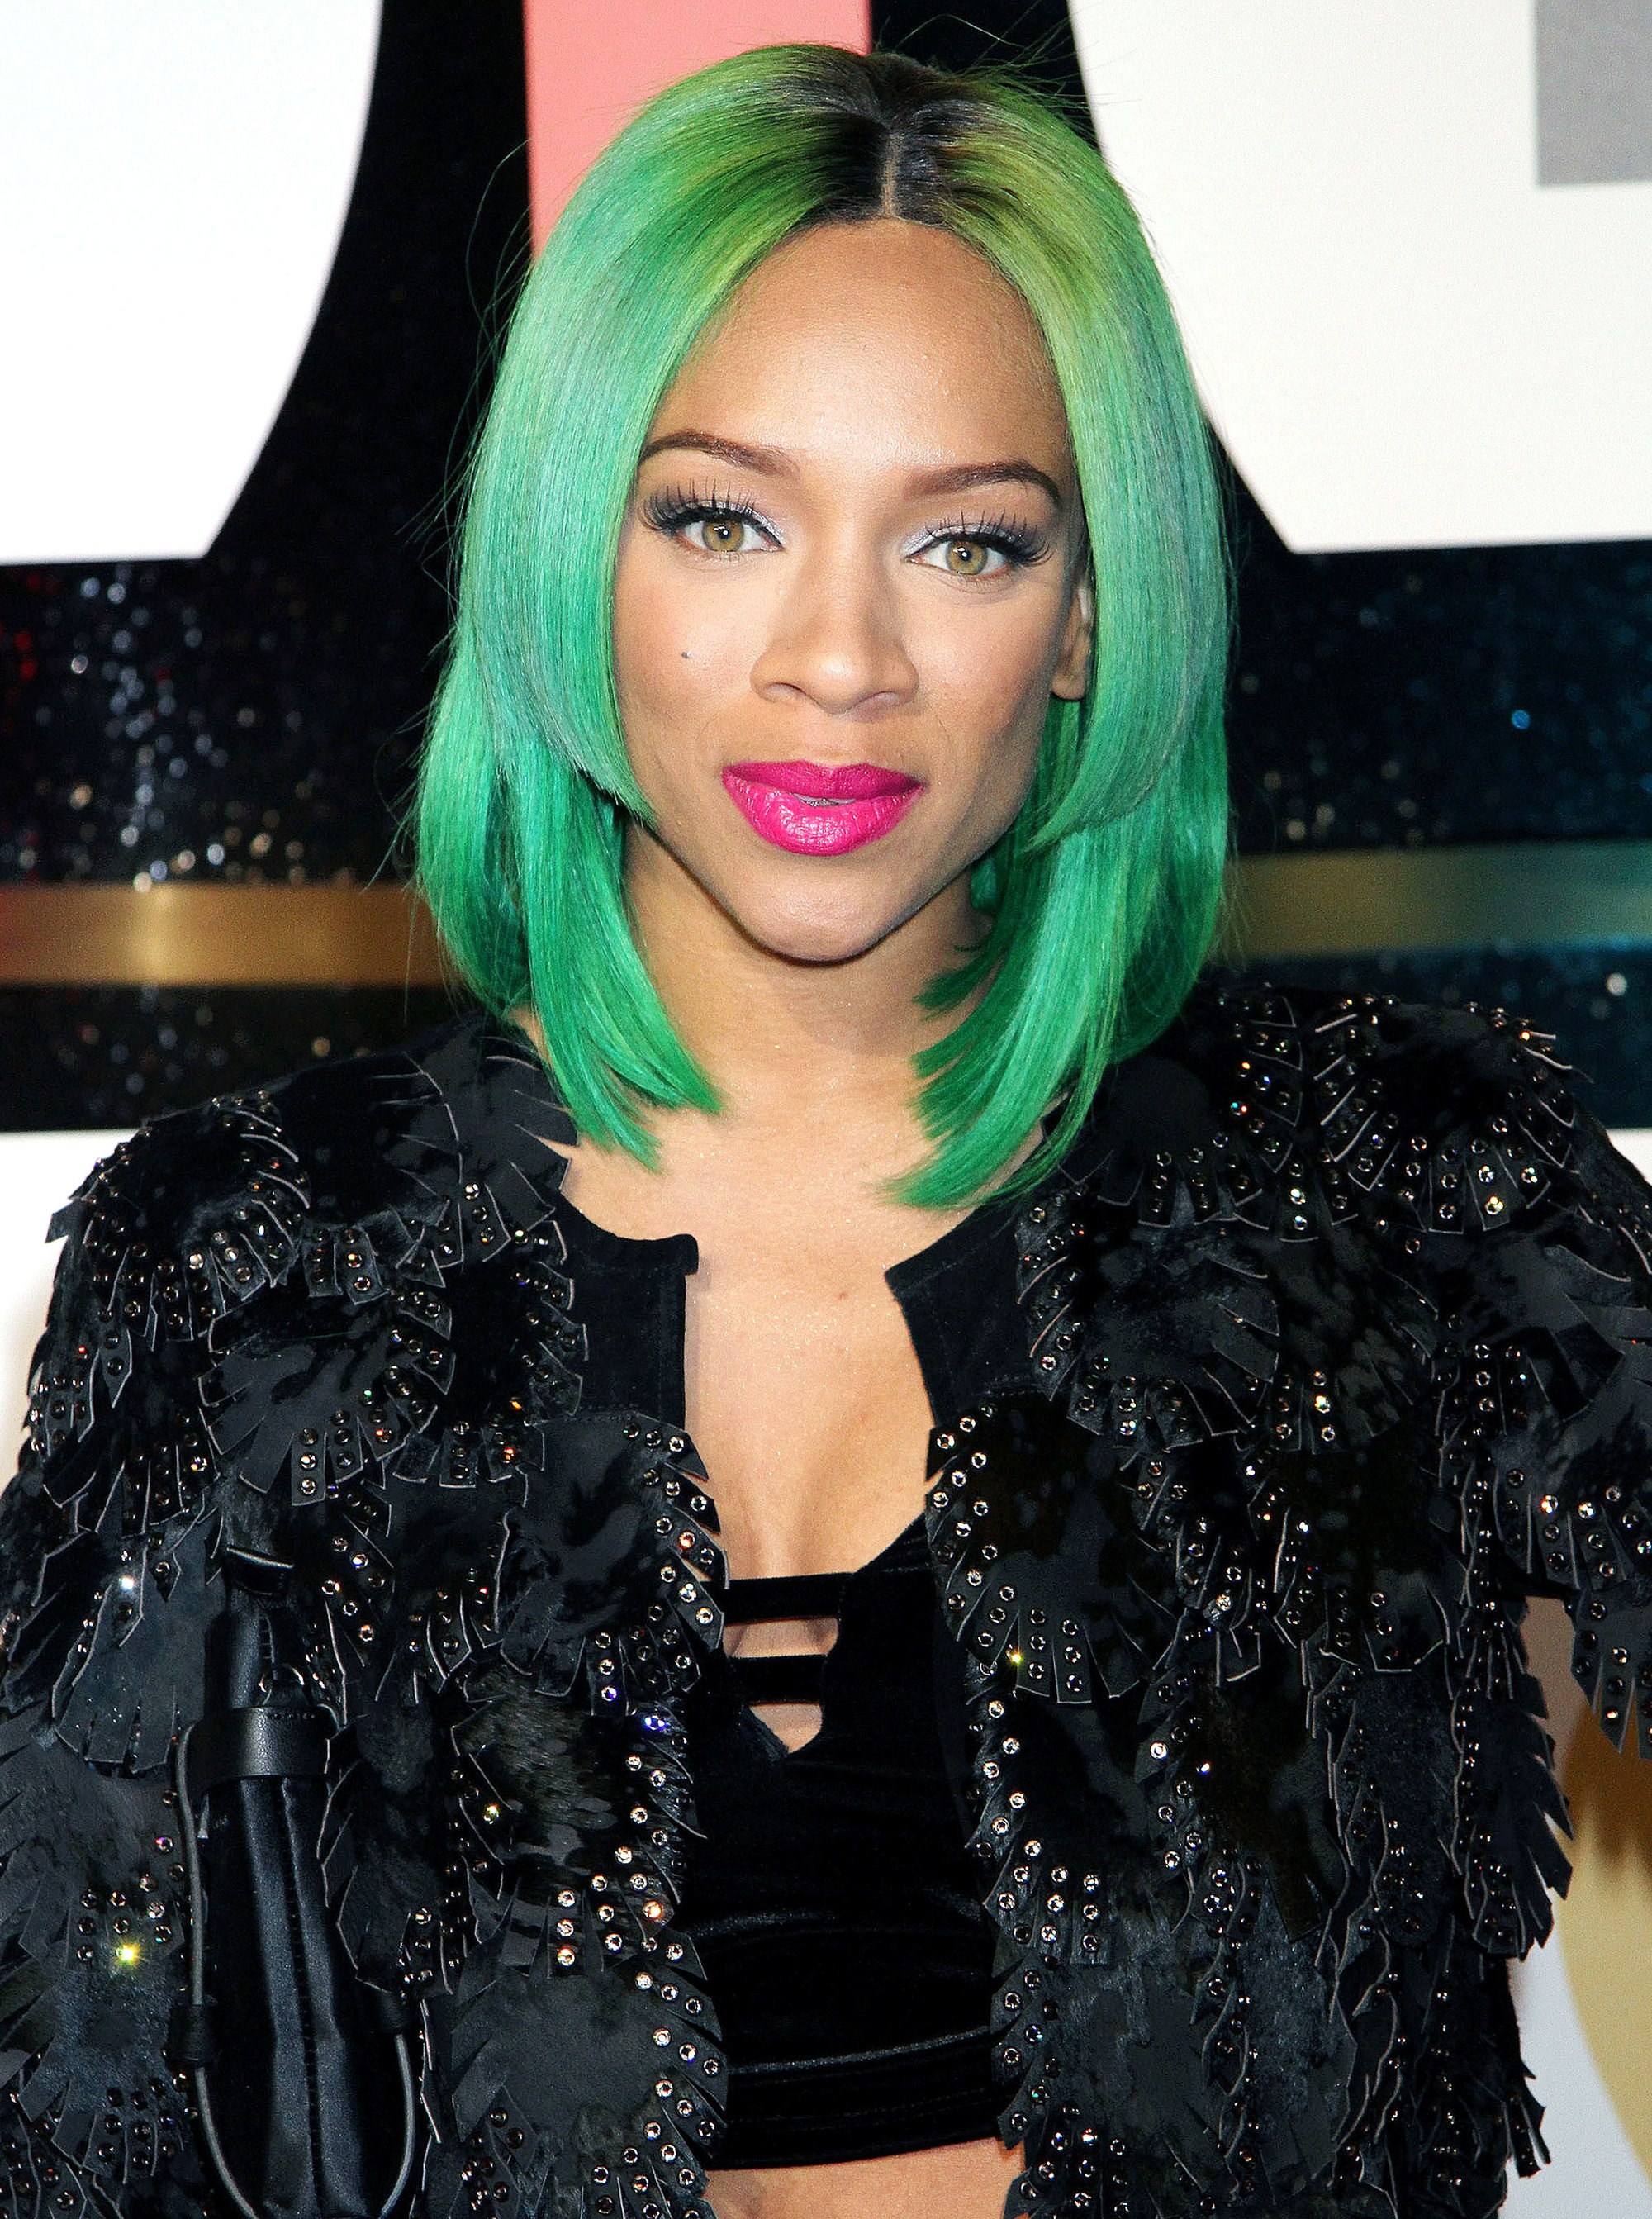 hip hop star Niatia Jessica Kirkland aka lil mama with a straight green lob hairstyle wearing a black velvet bralette with an embroidered black jacket over the top